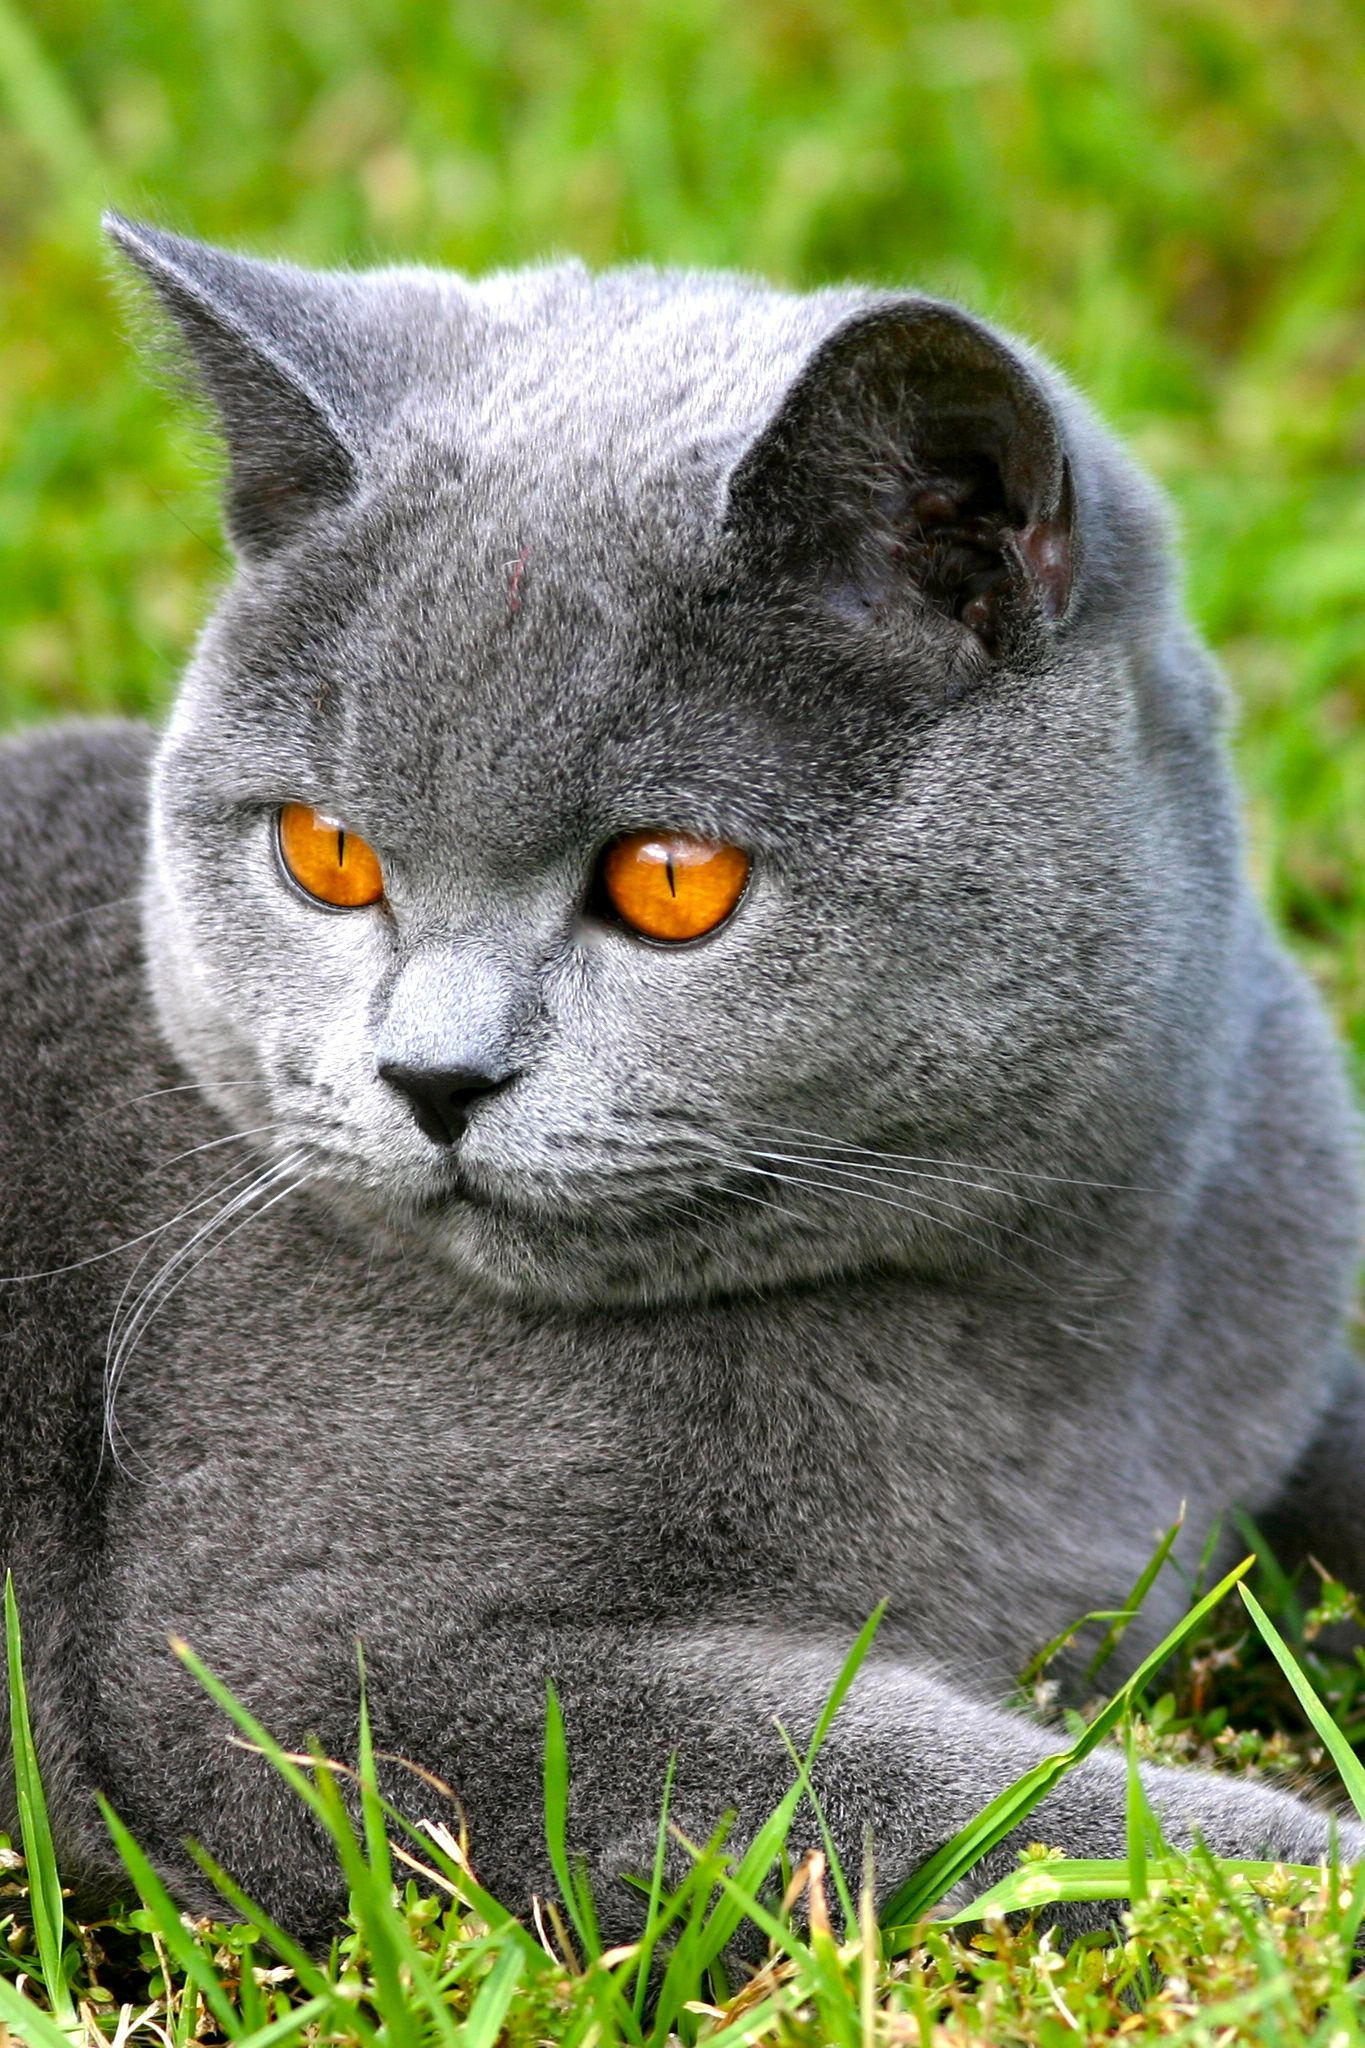 Teddy Blue British Shorthair By Richard Ainsworth British Snorkeling Outdoors Scuba Diving Diving Cave D In 2020 Cats And Kittens British Shorthair Kittens Cute Cats